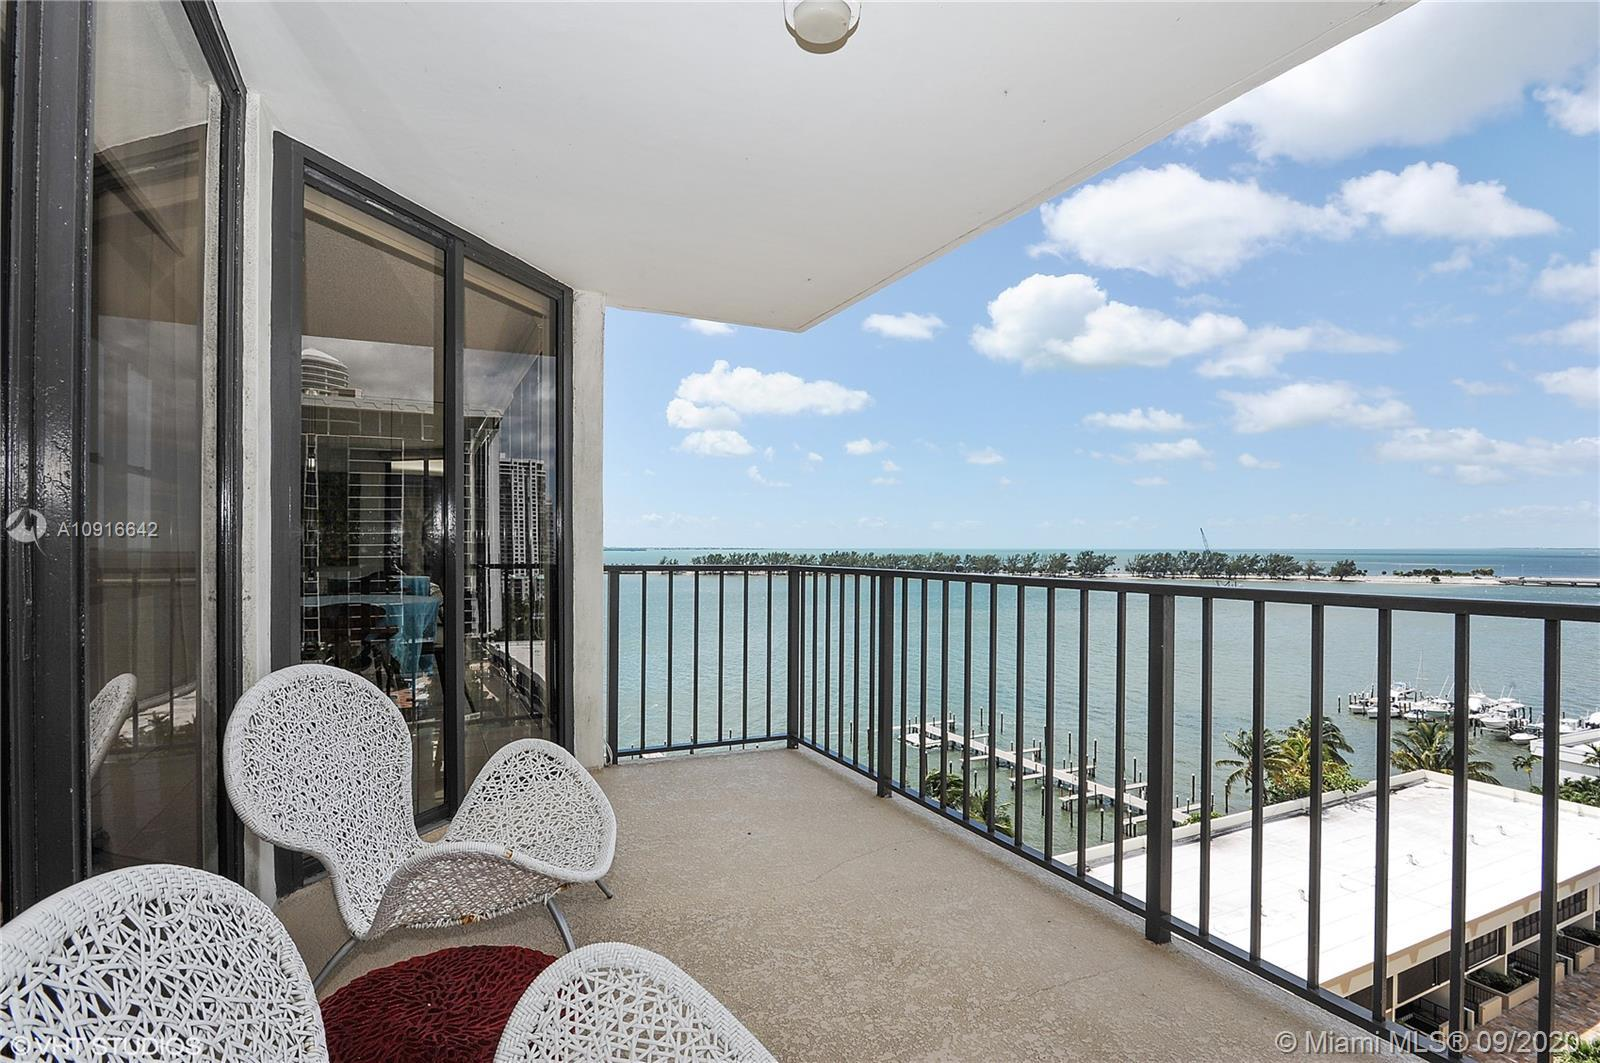 Completely remodeled 2 bedrooms and 2 bathrooms with unobstructed panoramic views of Biscayne Bay. N